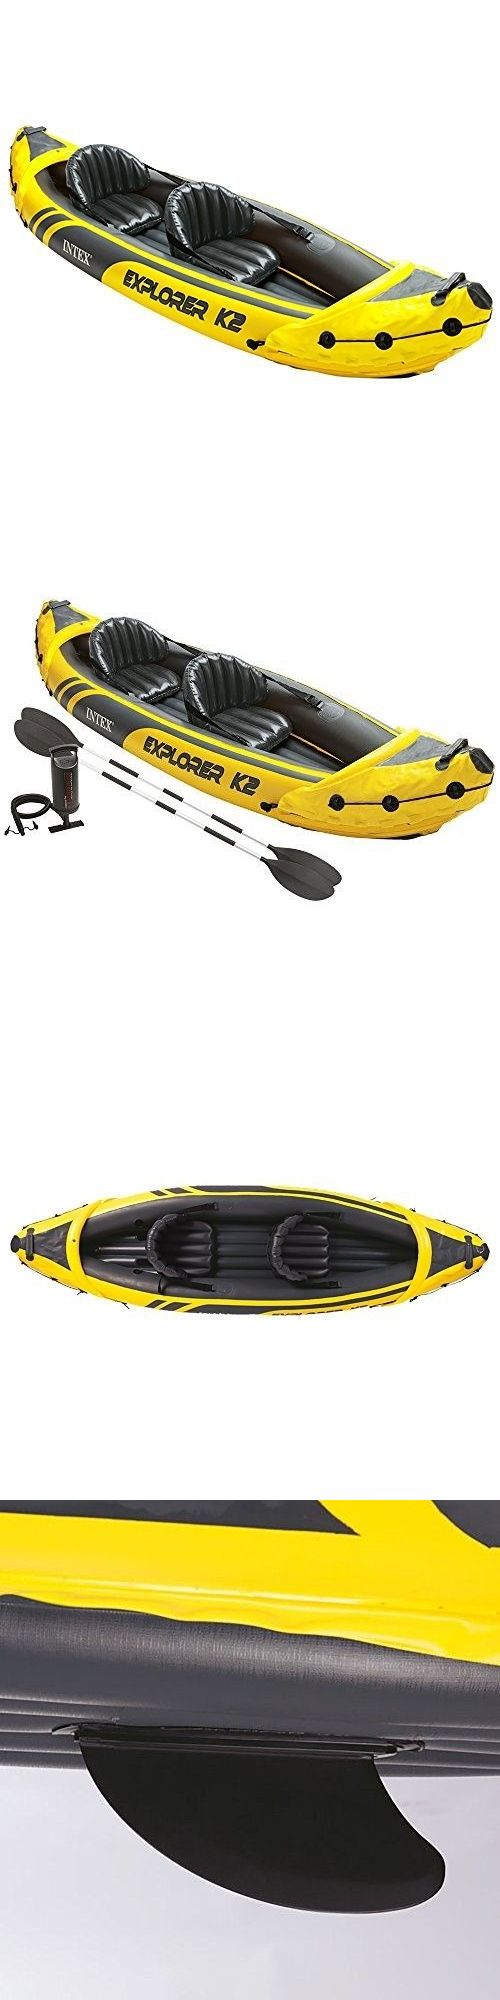 Inflatables 87090: Kayak Set 2-Person Aluminum Paddles Air Pump Inflatable Explorer Boat Water -> BUY IT NOW ONLY: $138.84 on eBay!